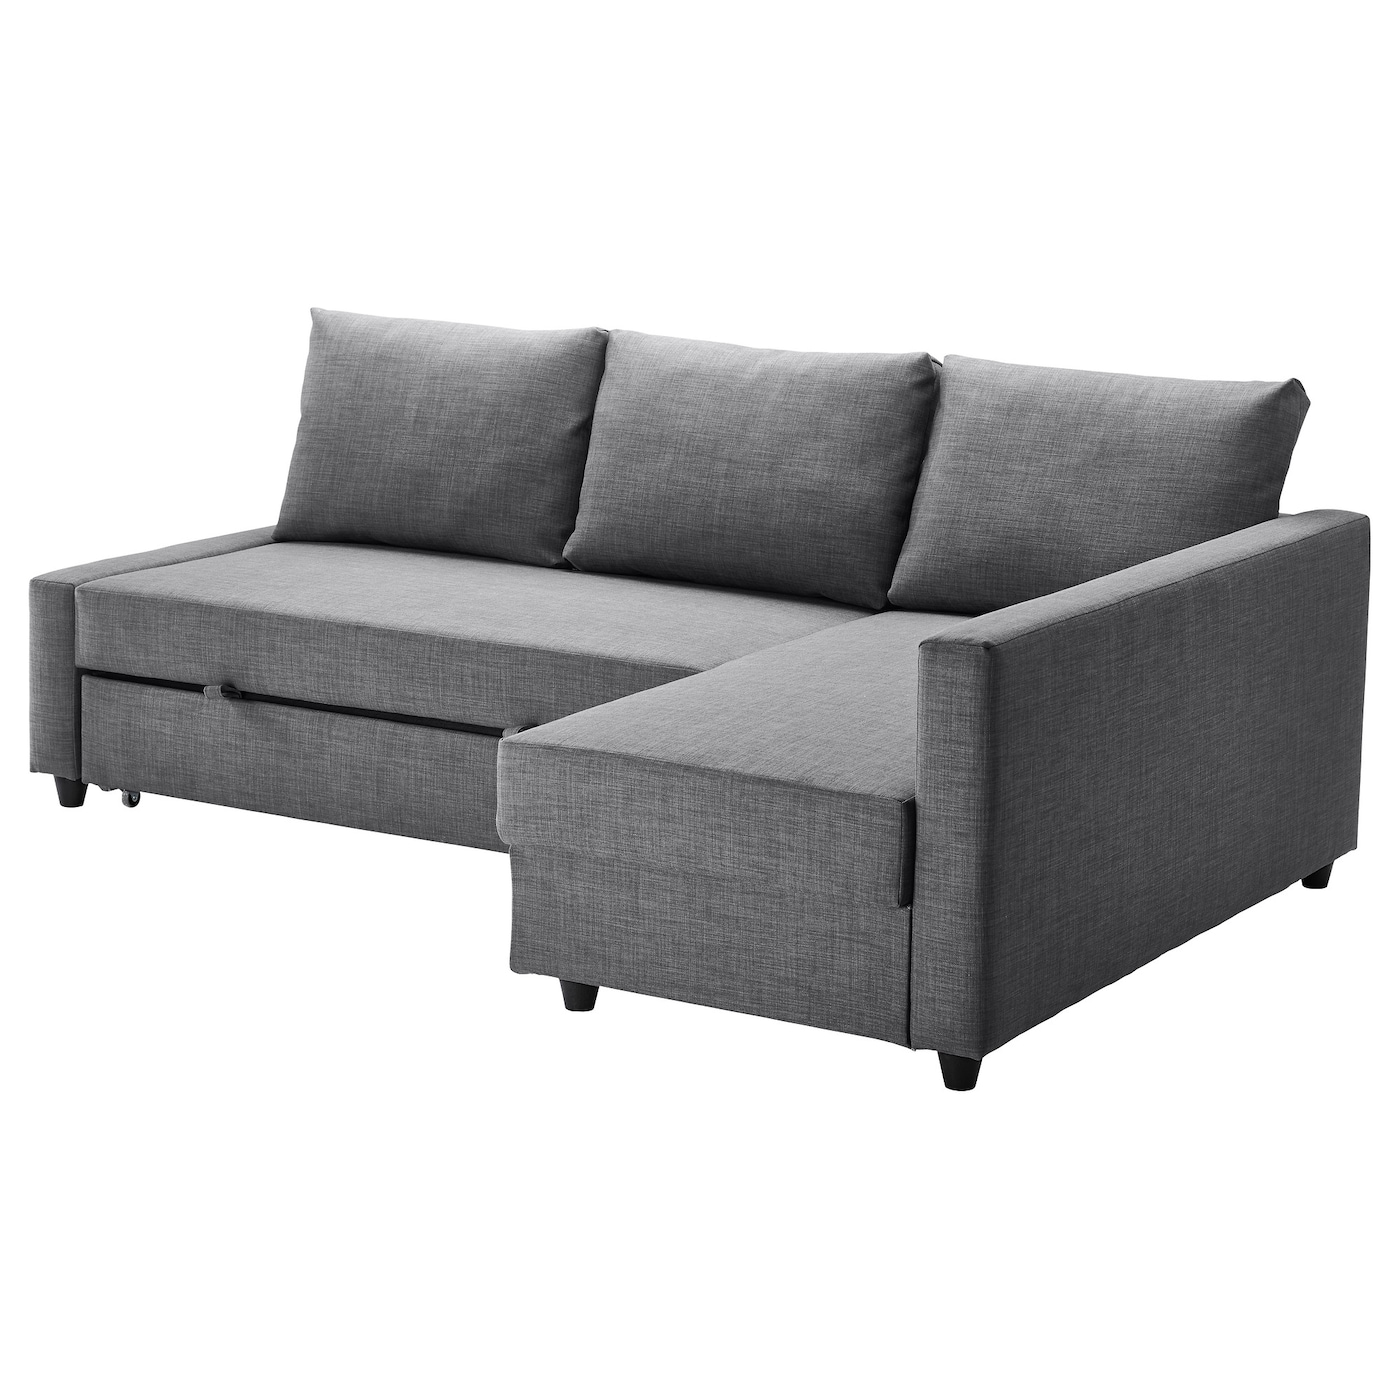 - FRIHETEN Sleeper Sectional,3 Seat W/storage, Skiftebo Dark Gray - IKEA